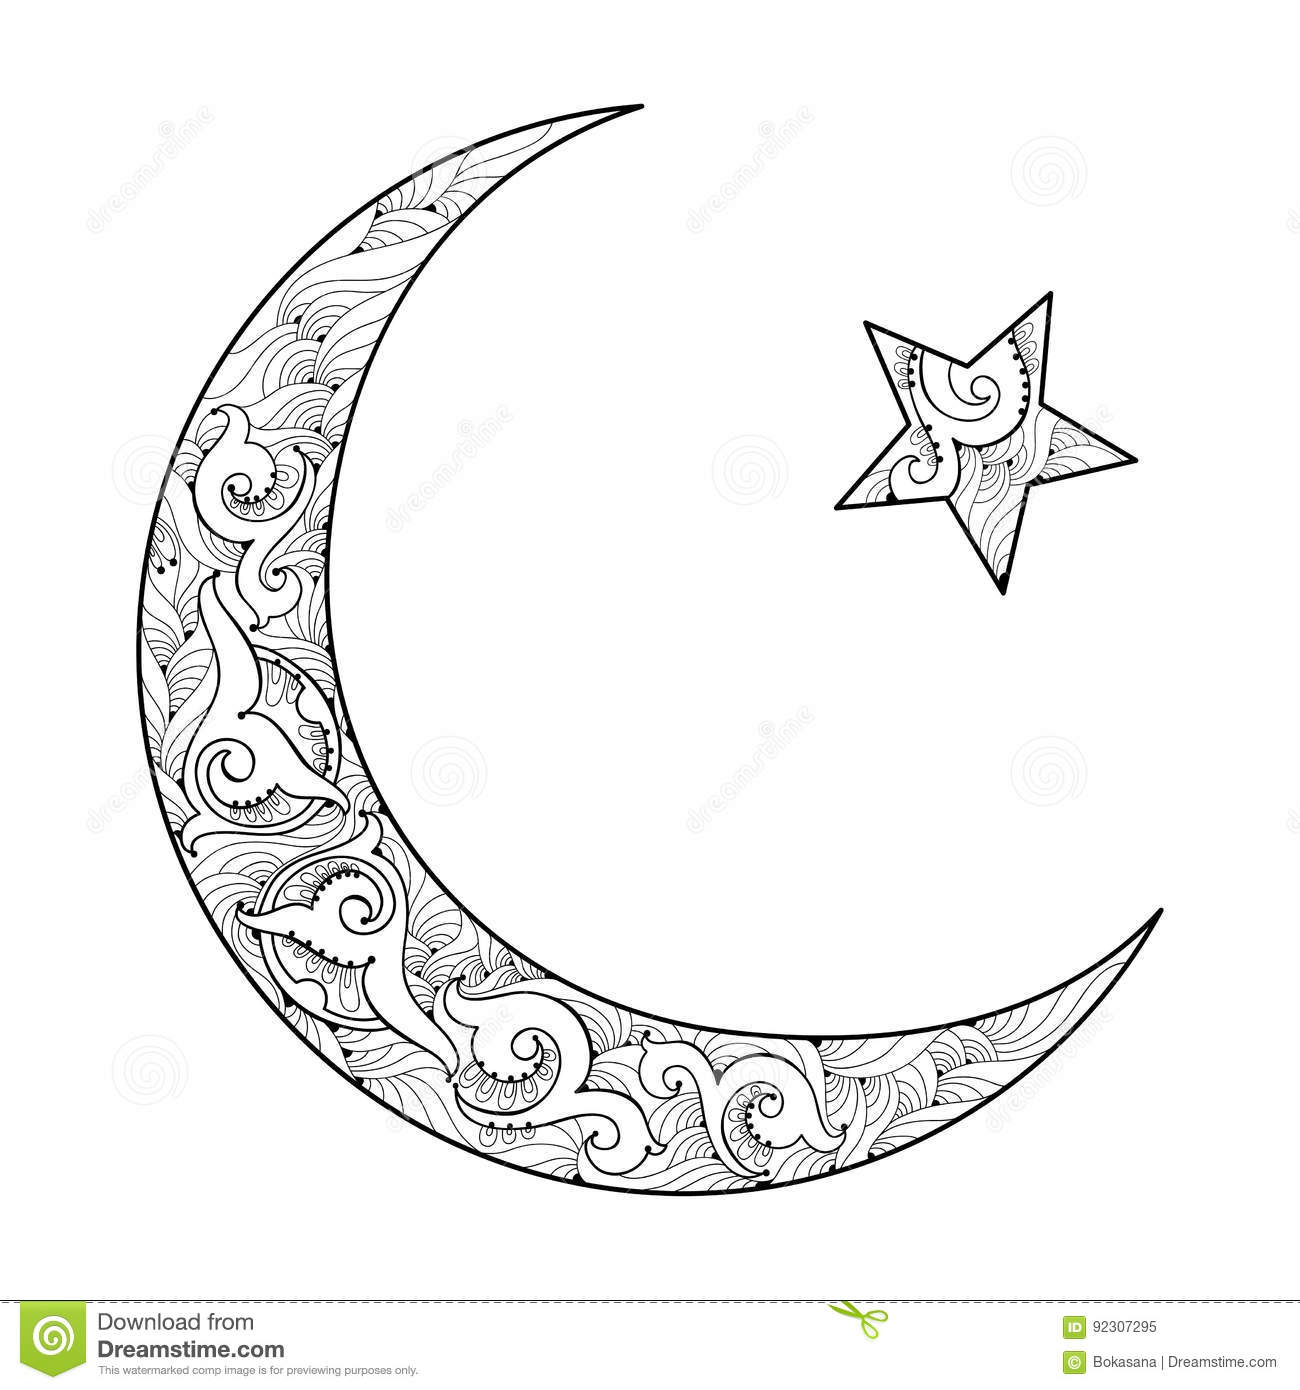 Vector silhouette of star and crescent in black isolated on white vector silhouette of star and crescent in black isolated on white background symbol of islam with ornate motif in contour style buycottarizona Gallery